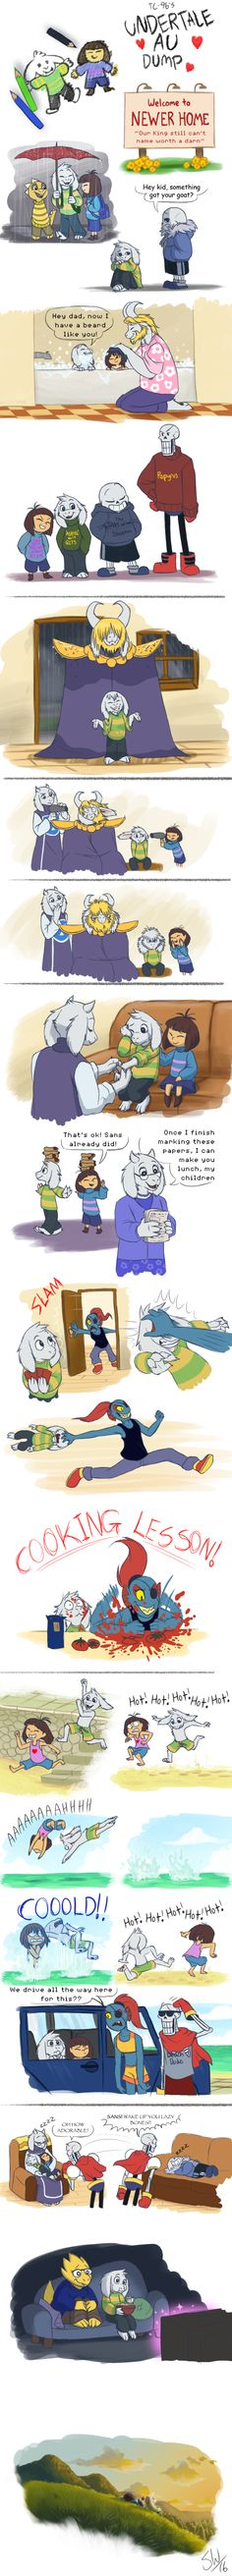 Undertale AU - SketchDump by TC-96.deviantart.com on @DeviantArt